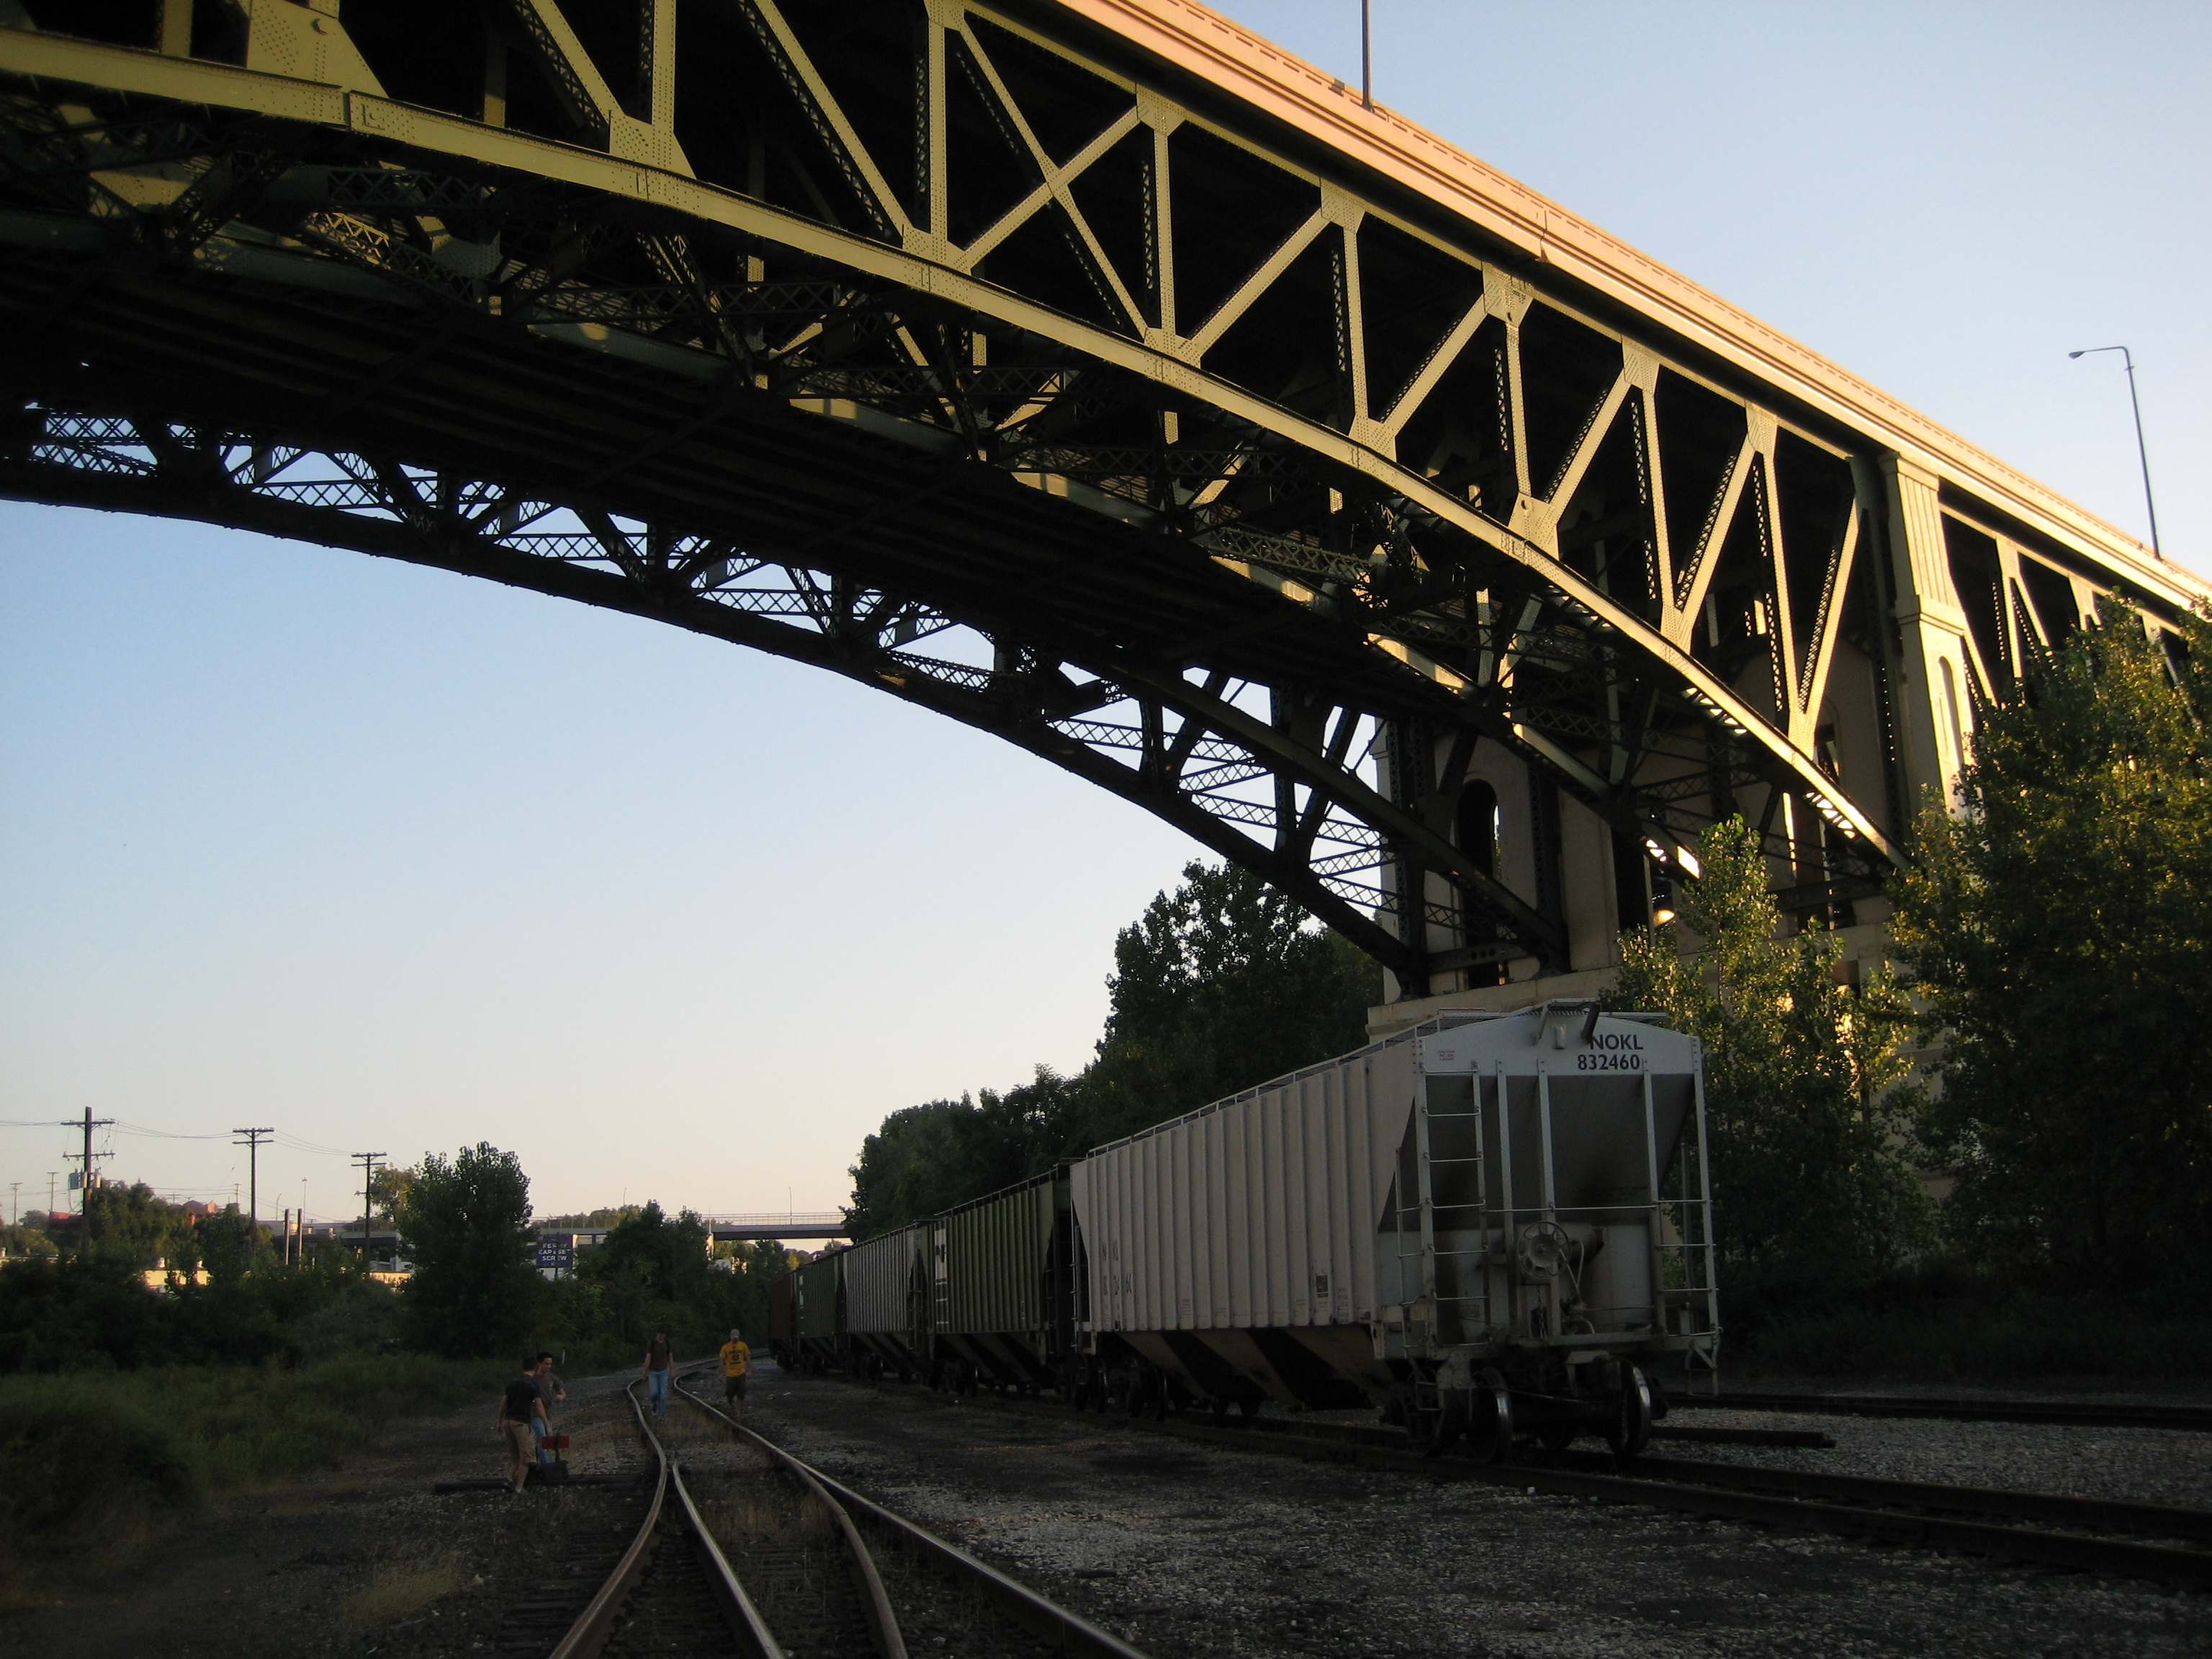 File:Rail under the bridge.jpg - Wikimedia Commons